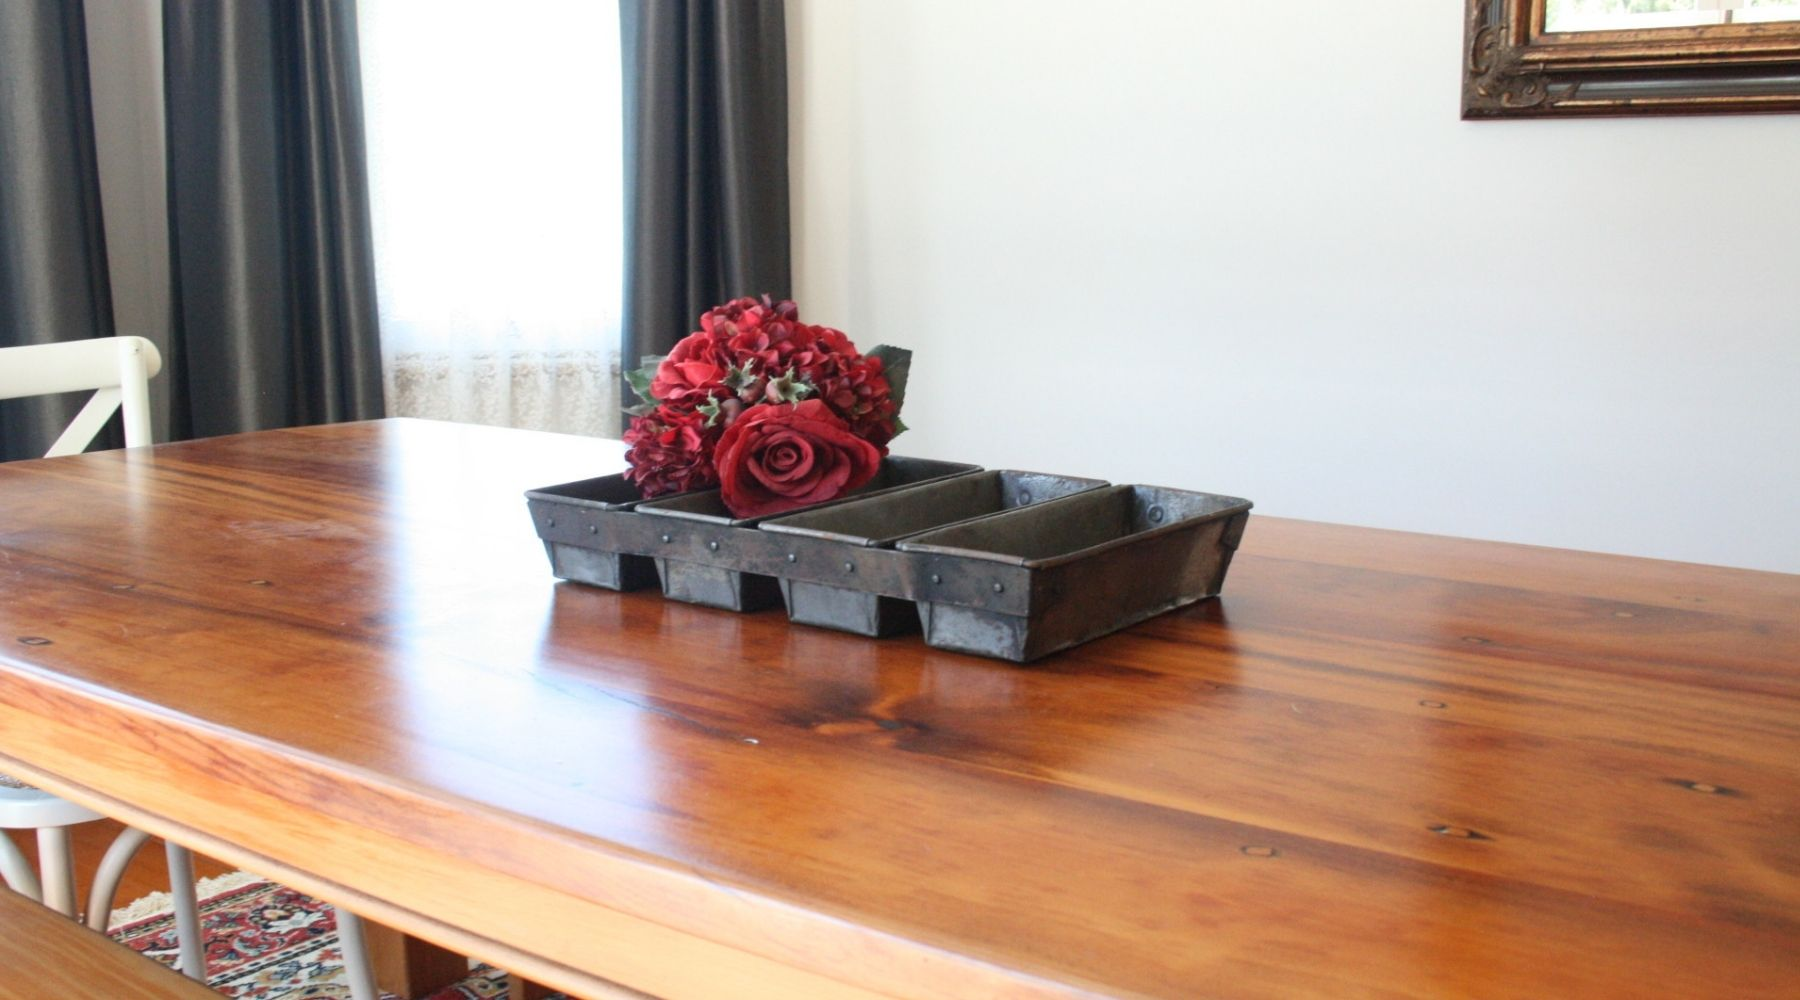 Bakers tray for table center piece, antique table fruit bowl, Auckland and New Zealand